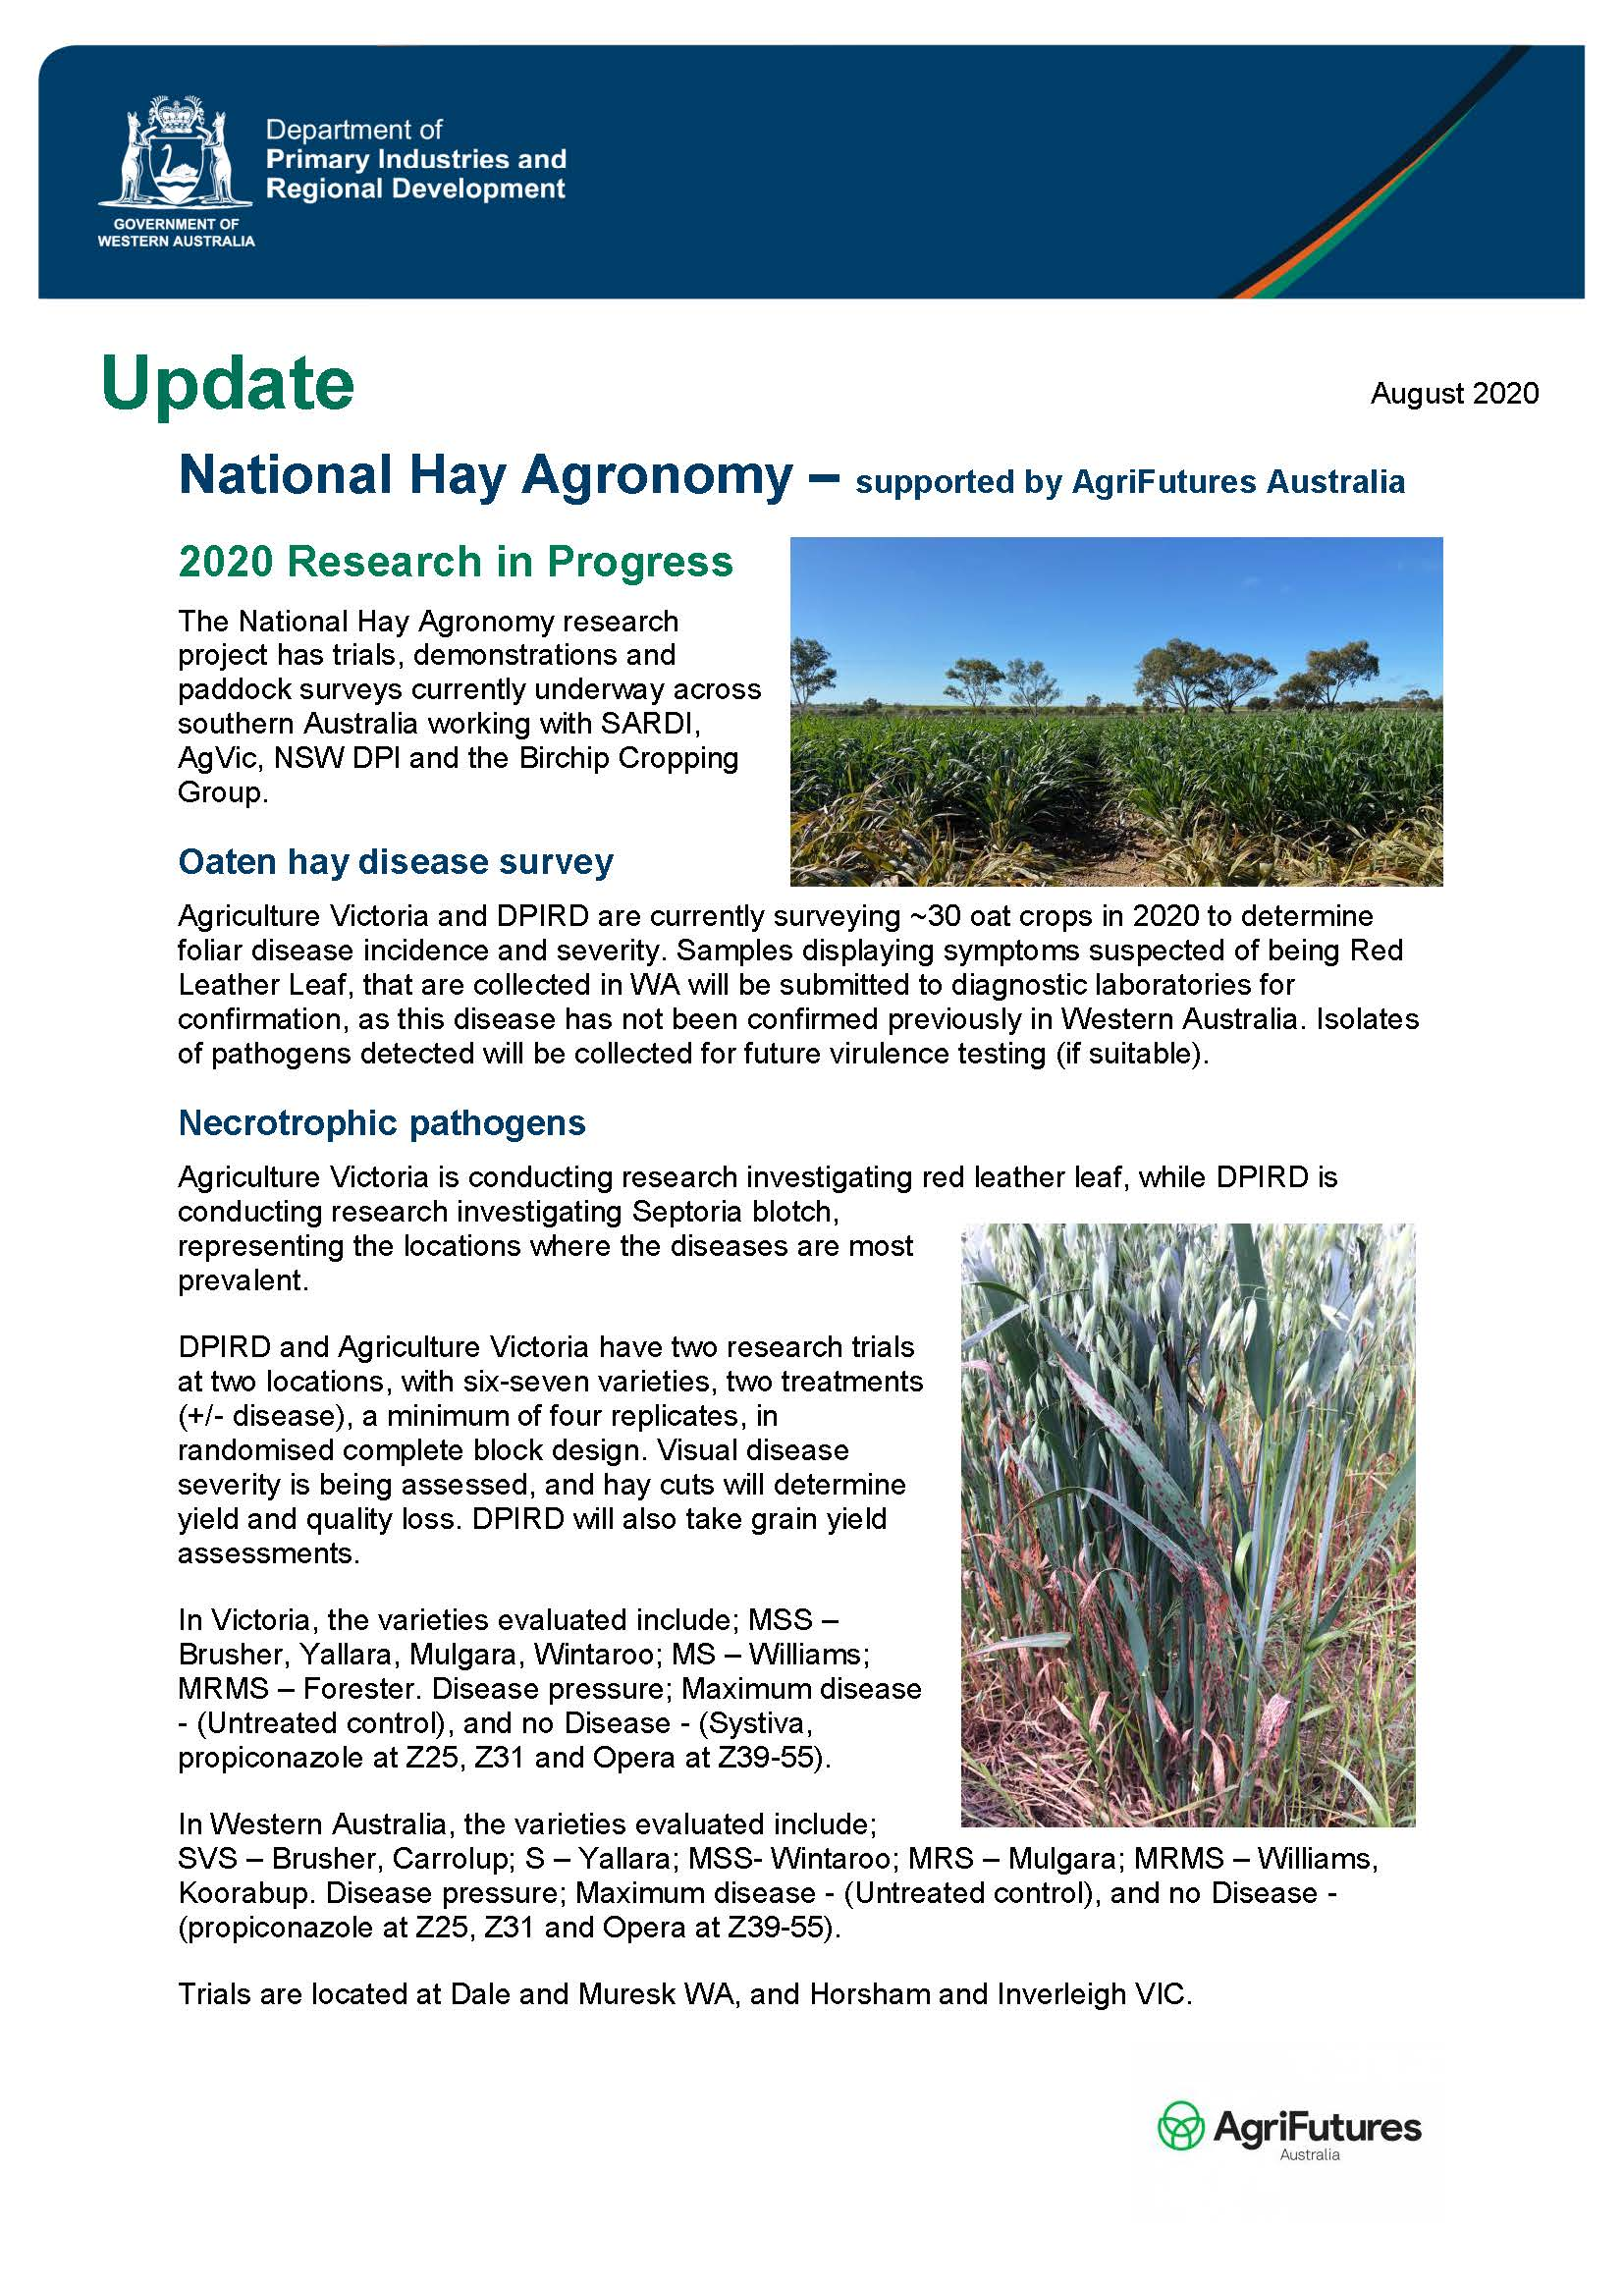 National Hay Agronomy: August 2020 Research in Progress - image